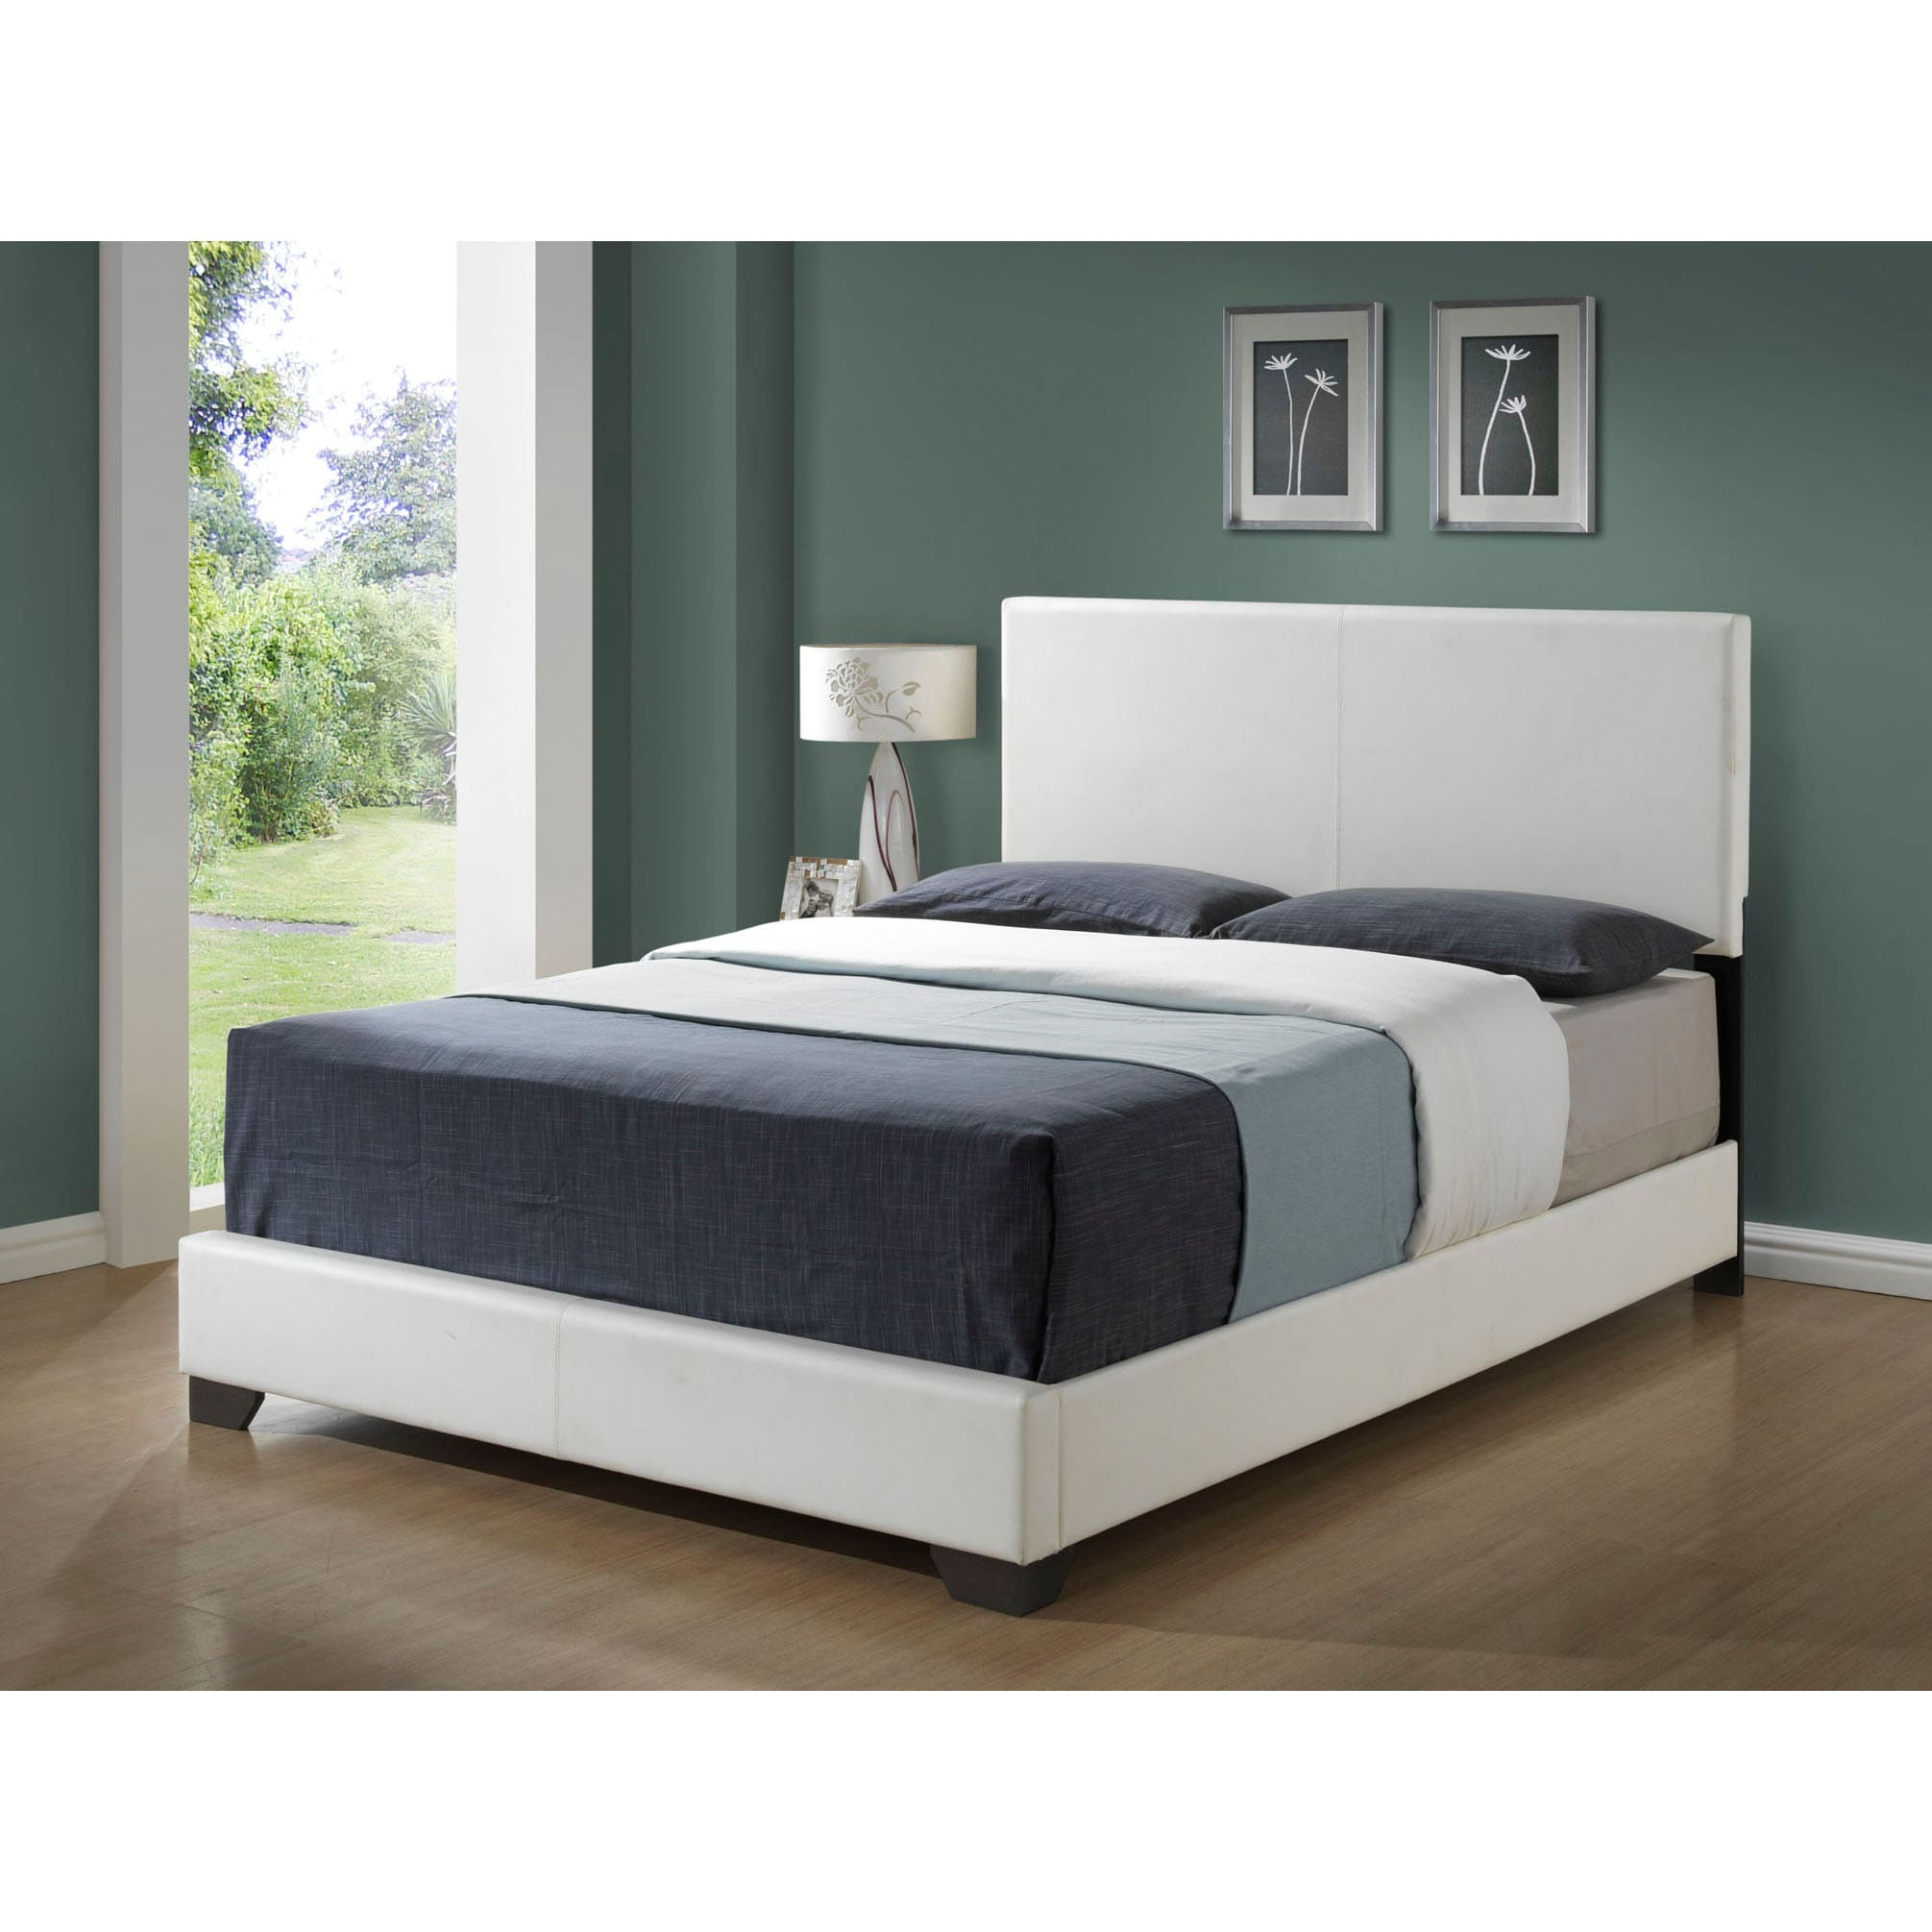 White Queen Size Platform Bed 2011 x 2011